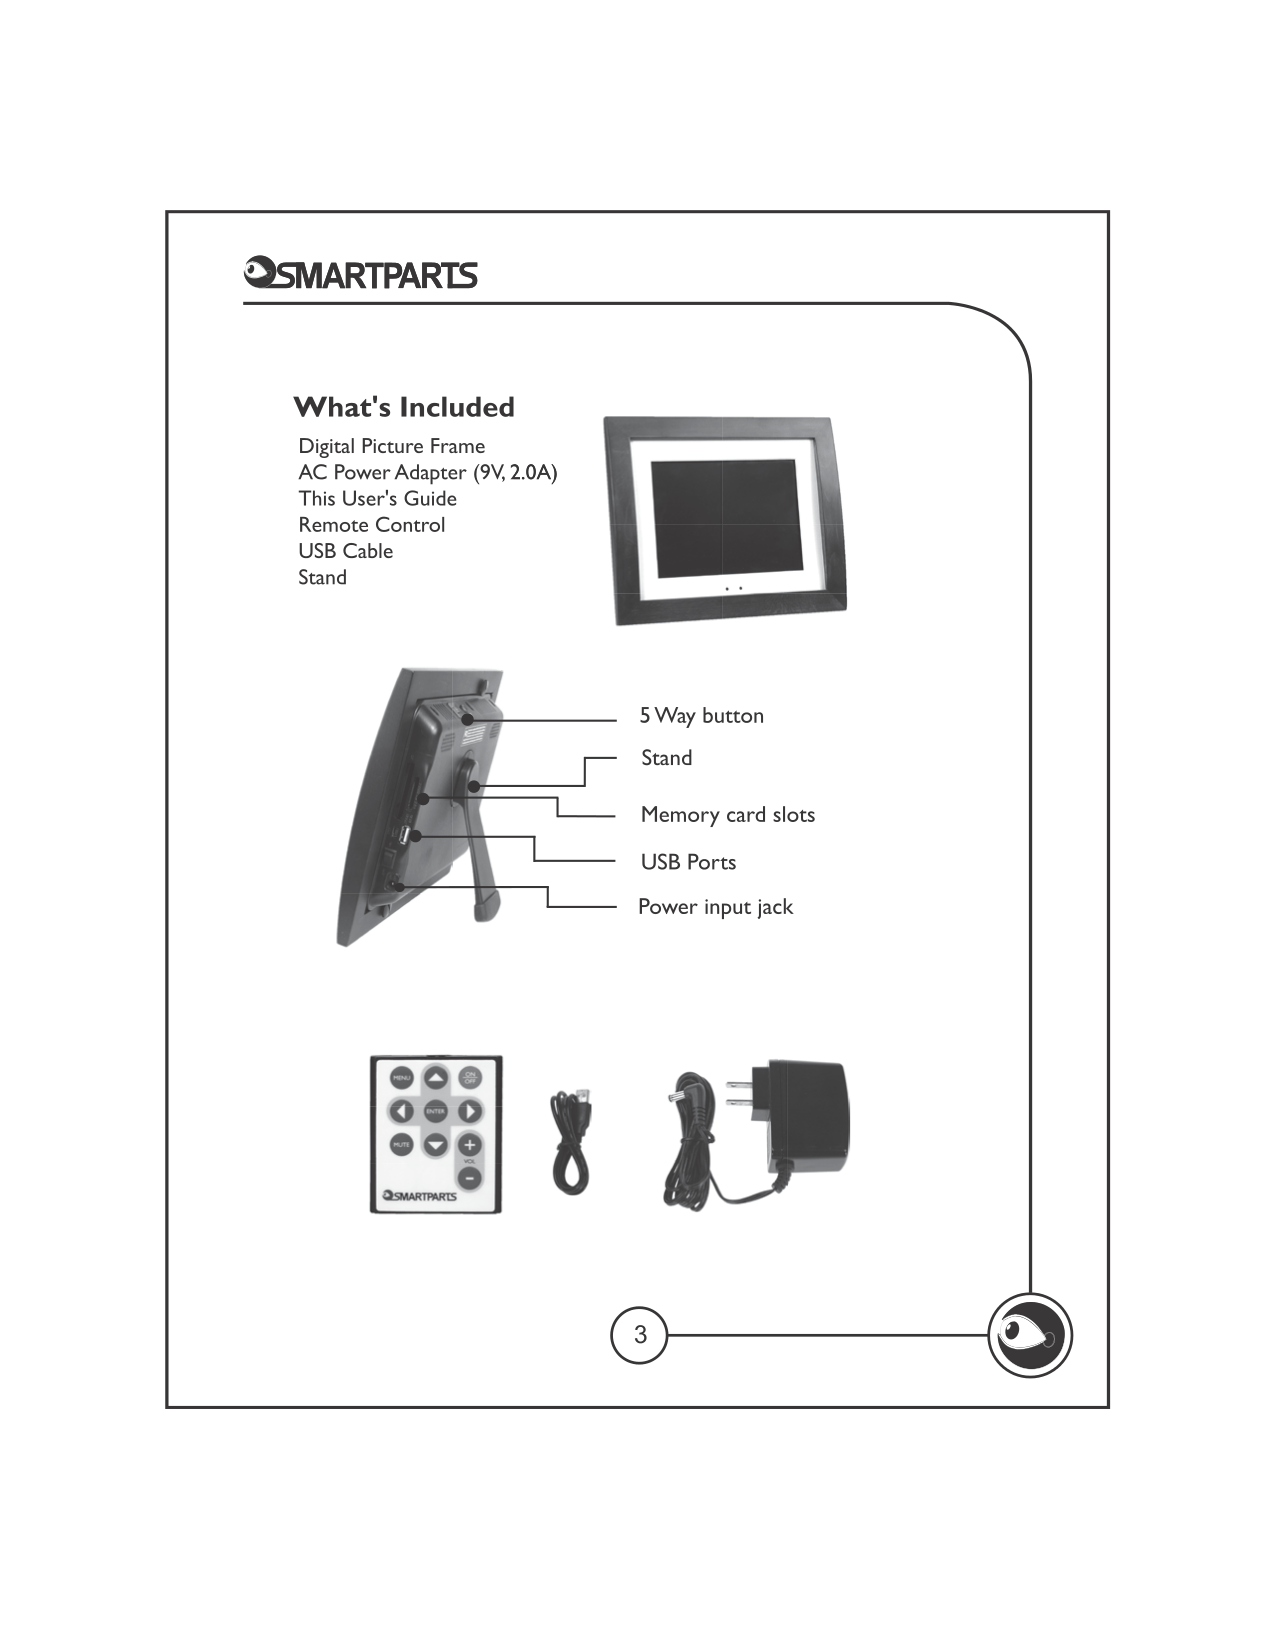 PDF manual for Smartparts Digital Photo Frame Syncpix SPX12